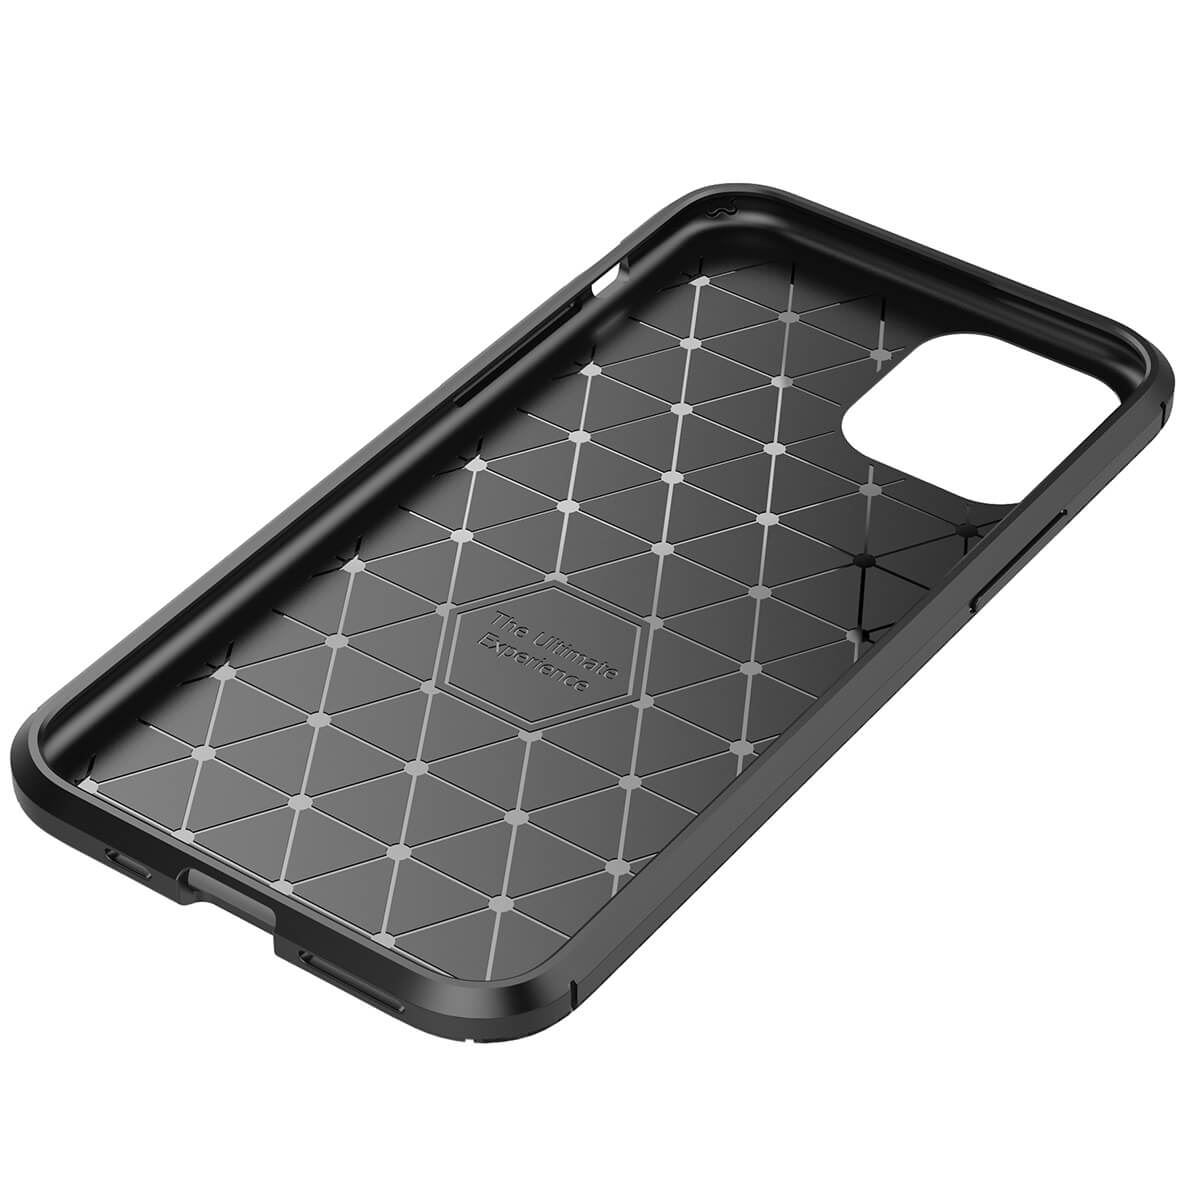 Carbon-Fibre-Soft-Case-For-iPhone-11-X-XR-Max-8-7-6-Plus-Slim-TPU-Silicone-Cover thumbnail 9